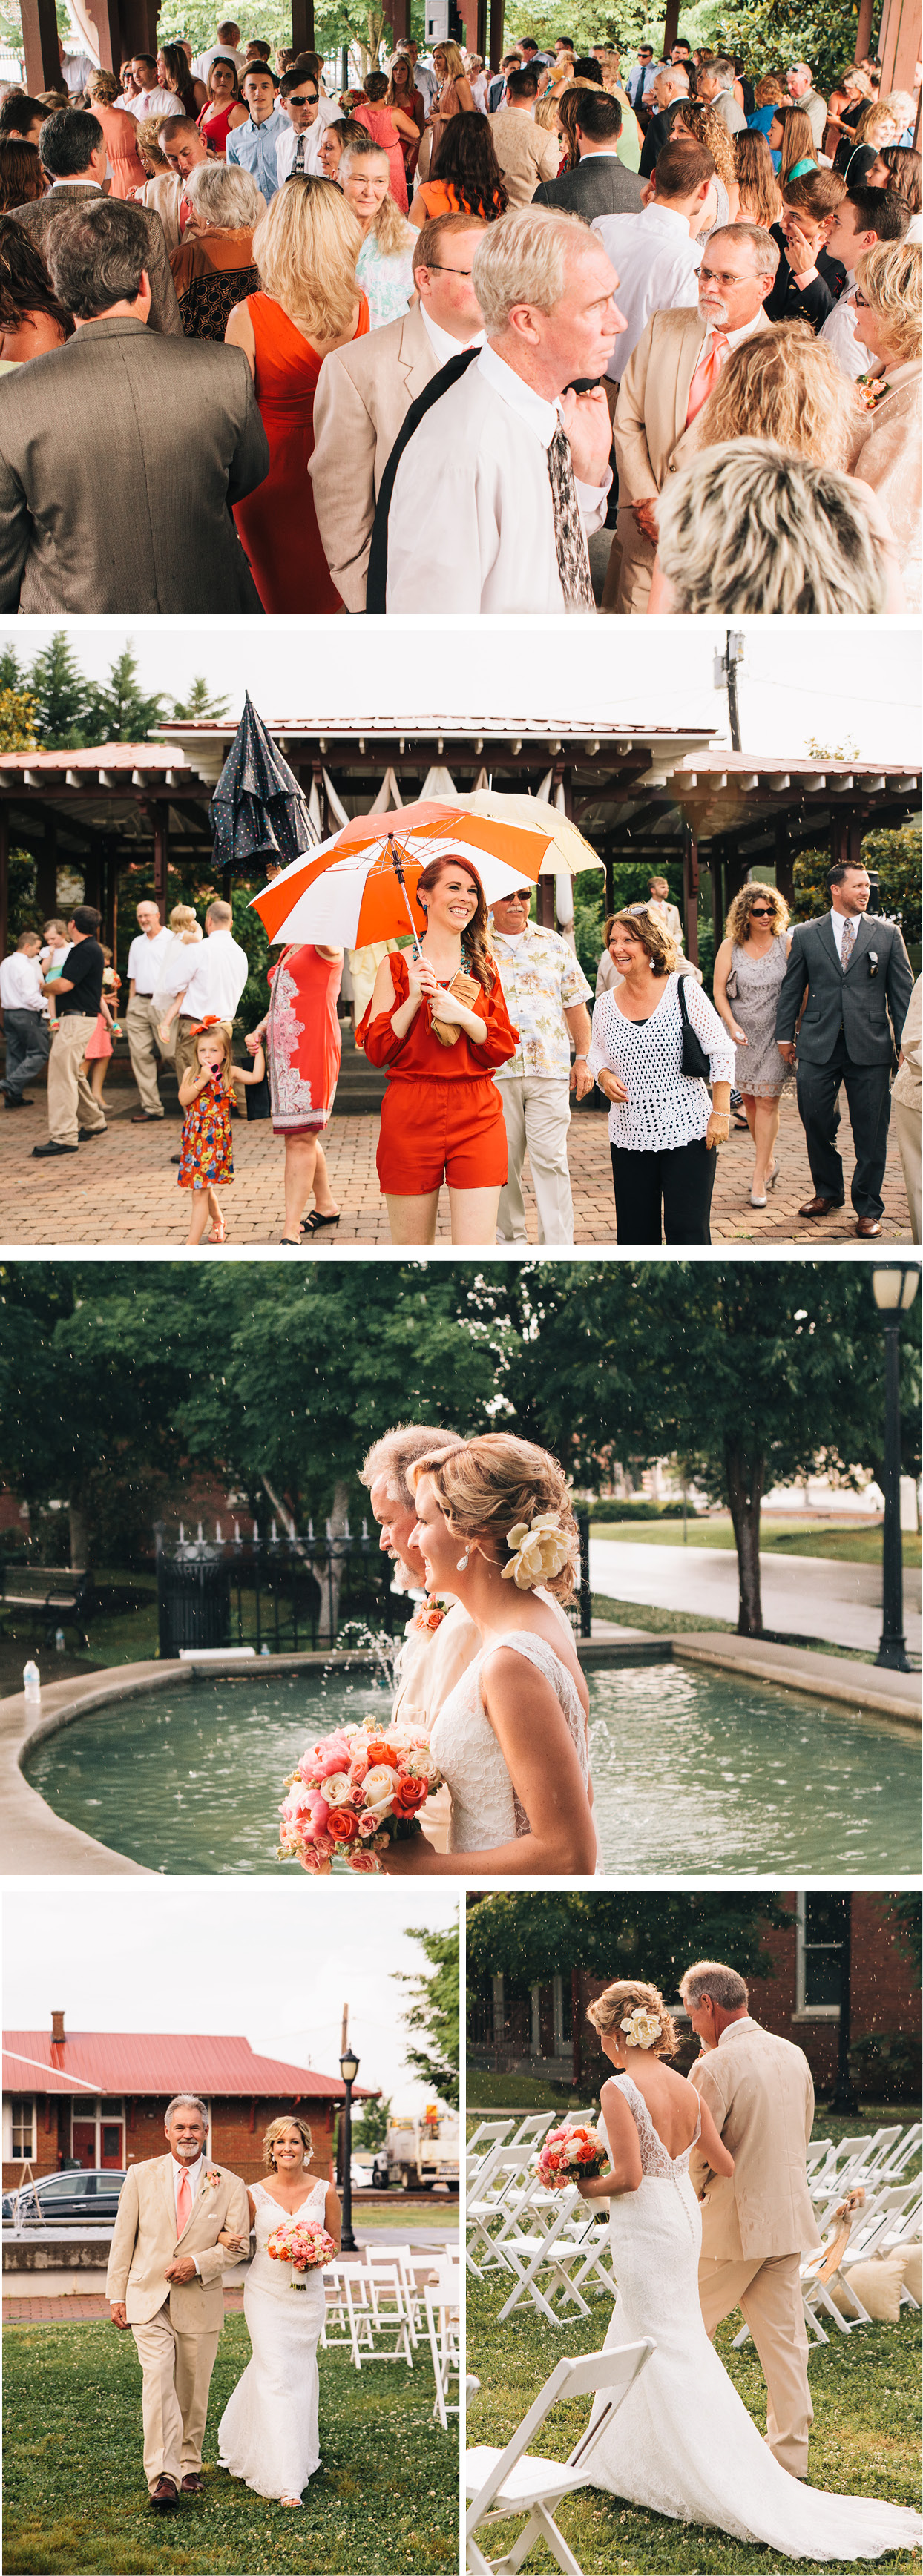 CK-Photo-Nashville-wedding-photography-bd6.jpg